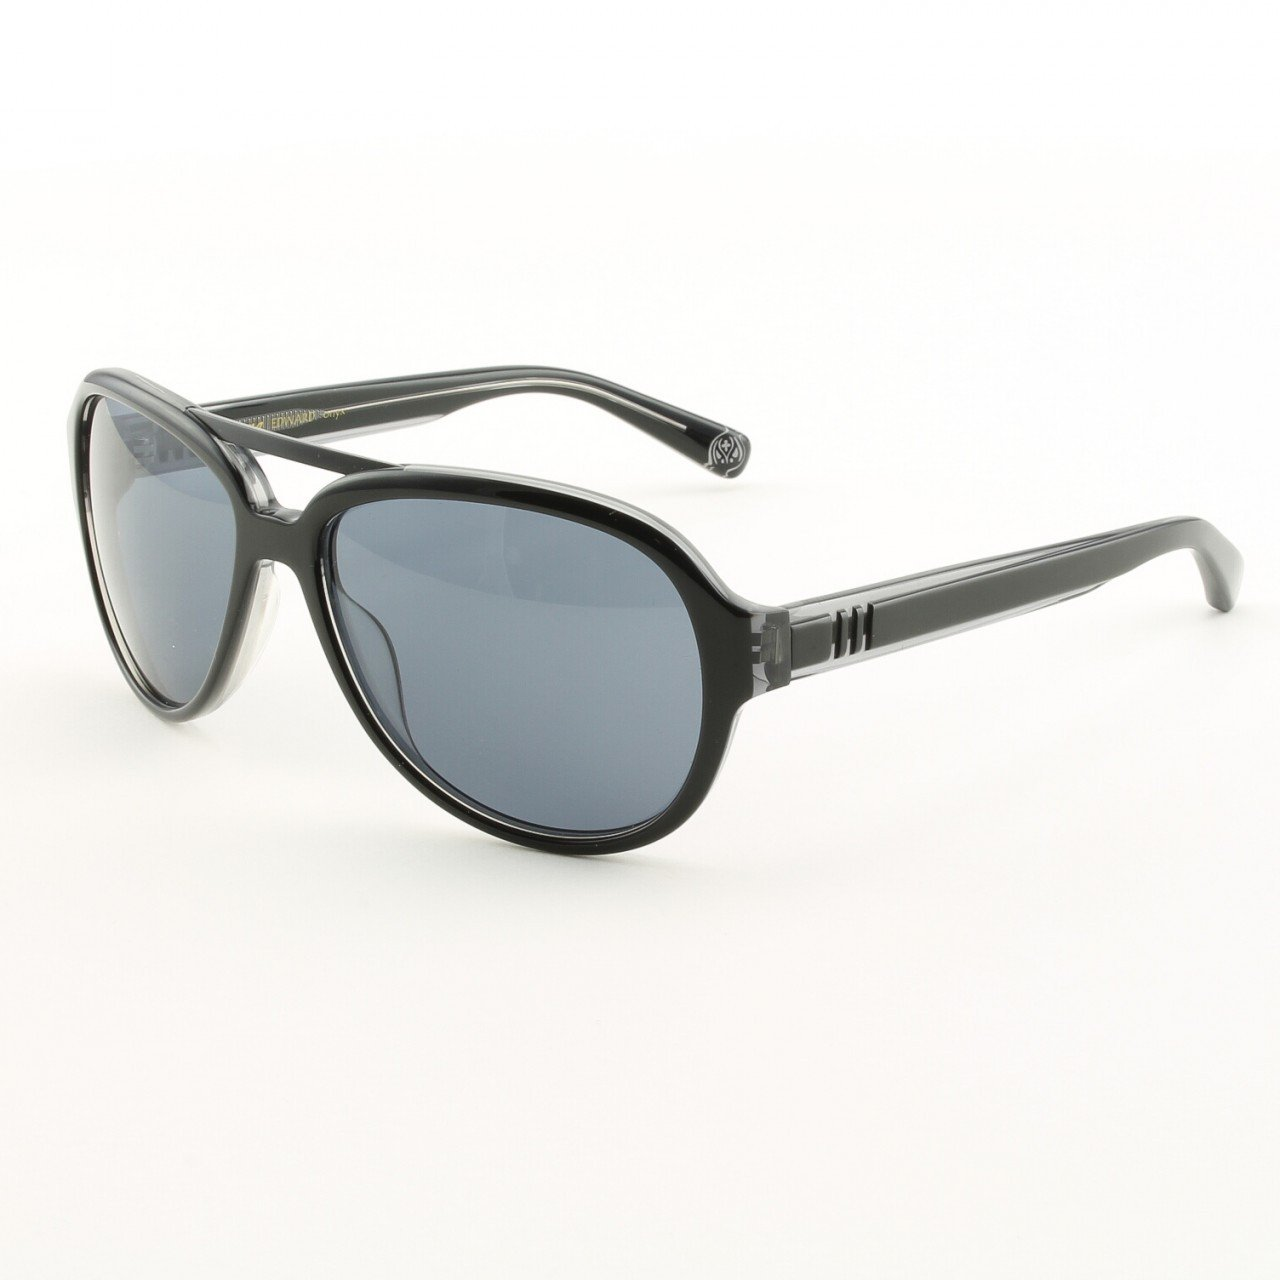 Loree Rodkin Edward Sunglasses by Sama Col. Onyx with Gray Lenses